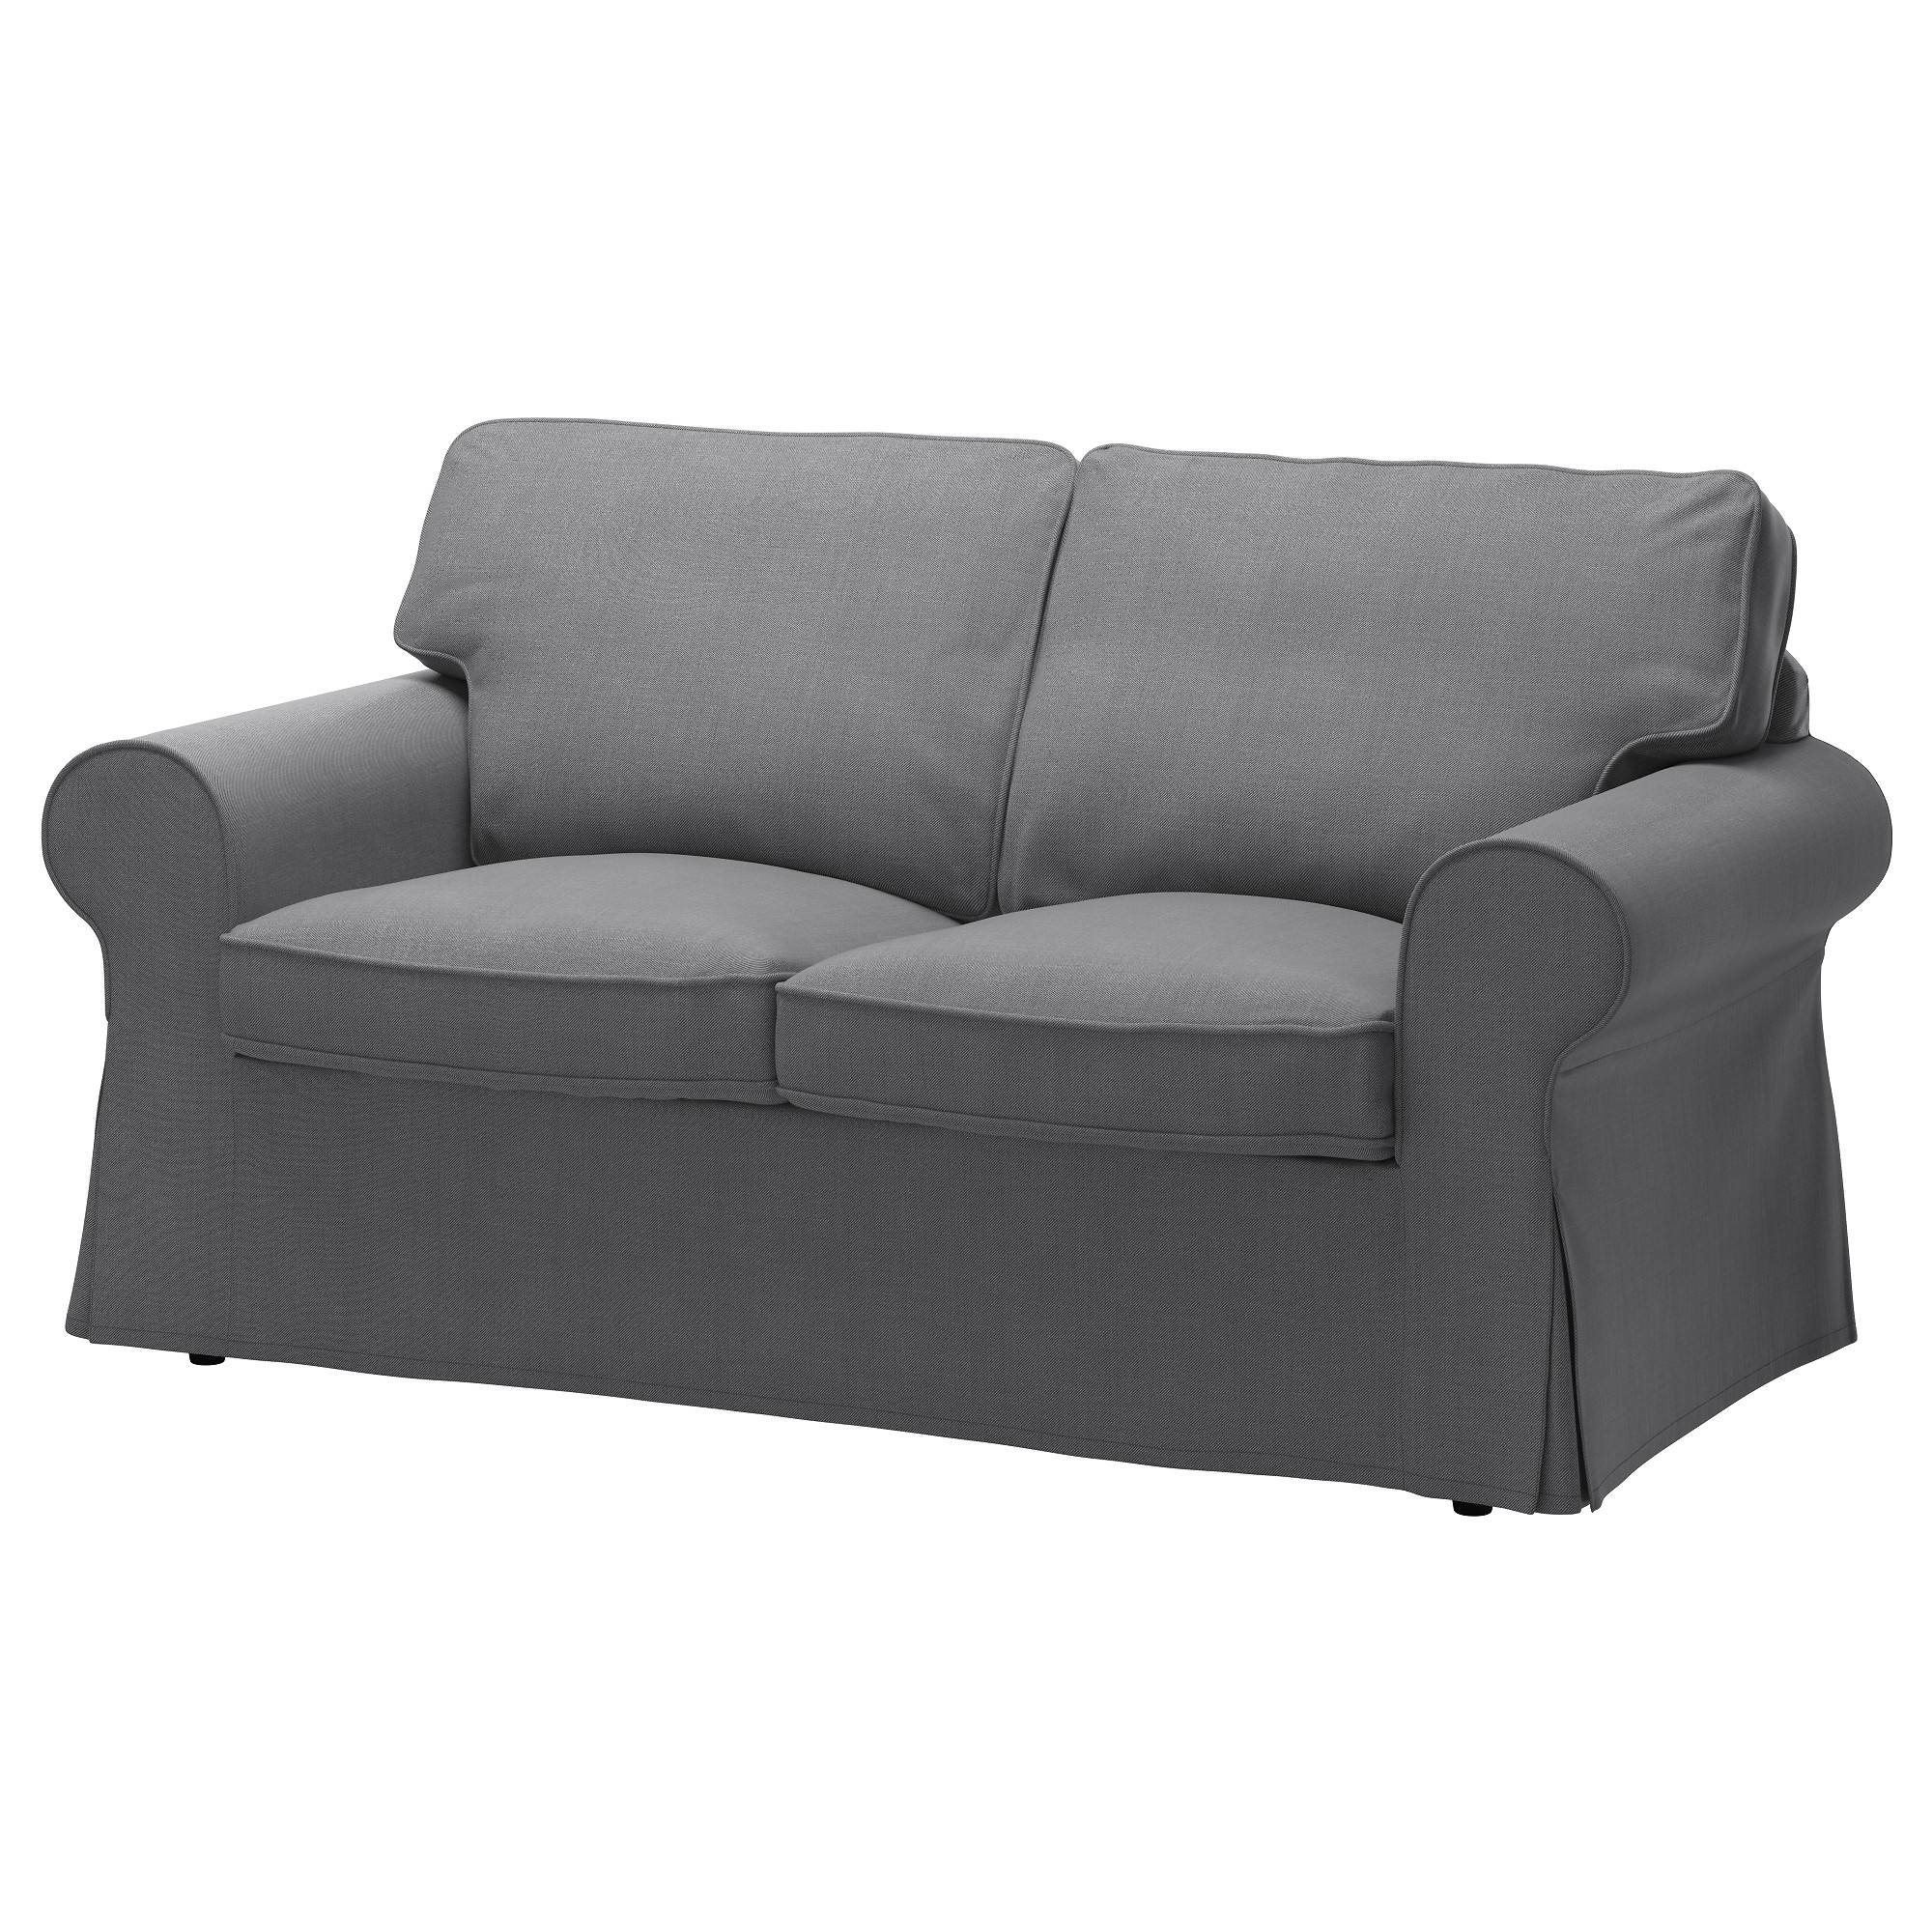 Small Sofa & 2 Seater Sofa | Ikea throughout Small 2 Seater Sofas (Image 19 of 30)